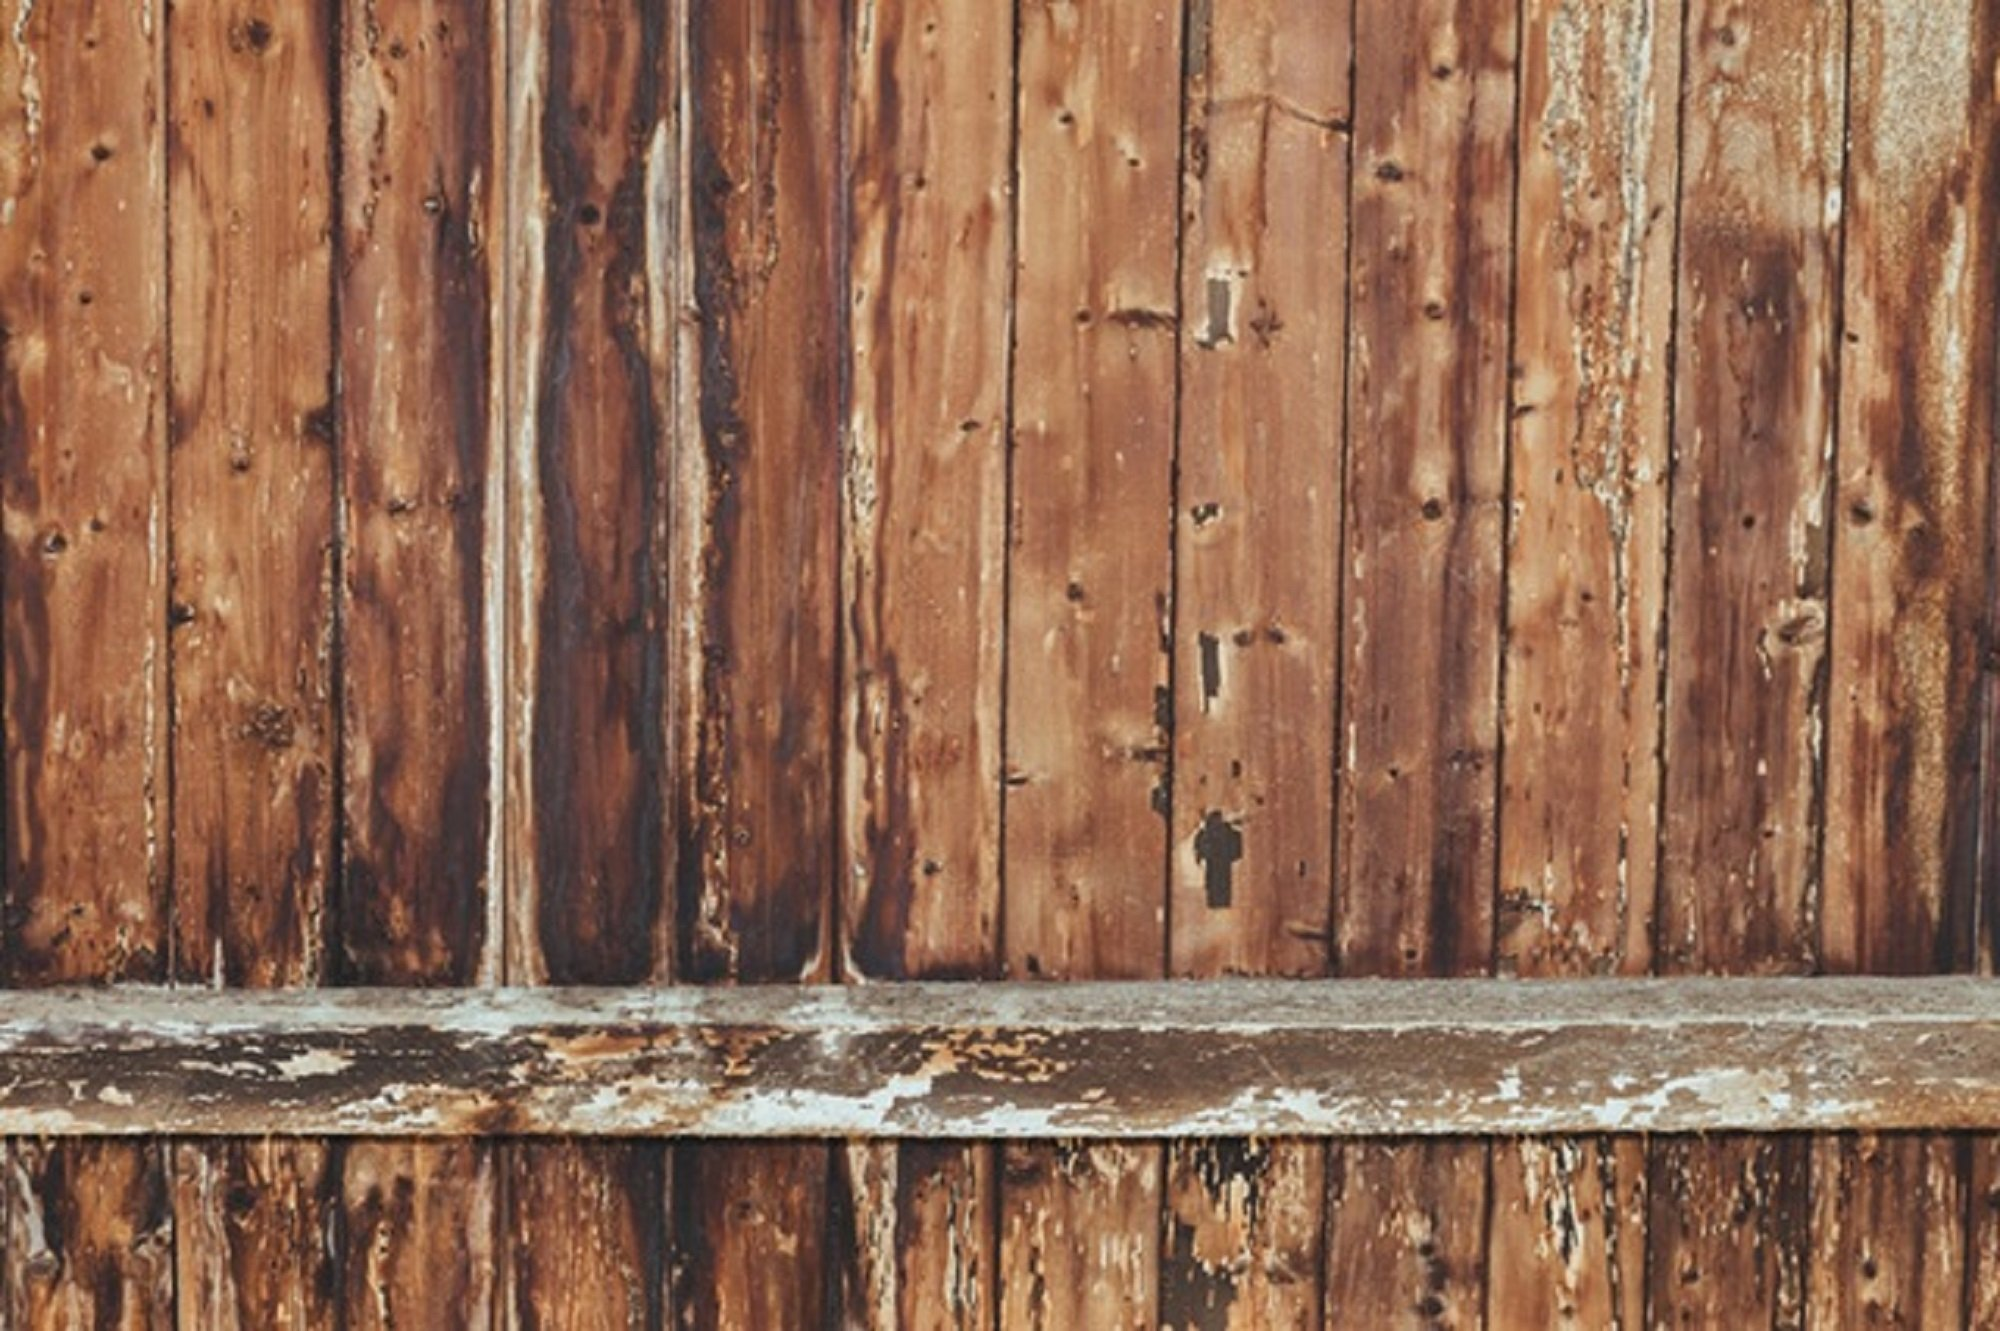 a wood fence for a website background